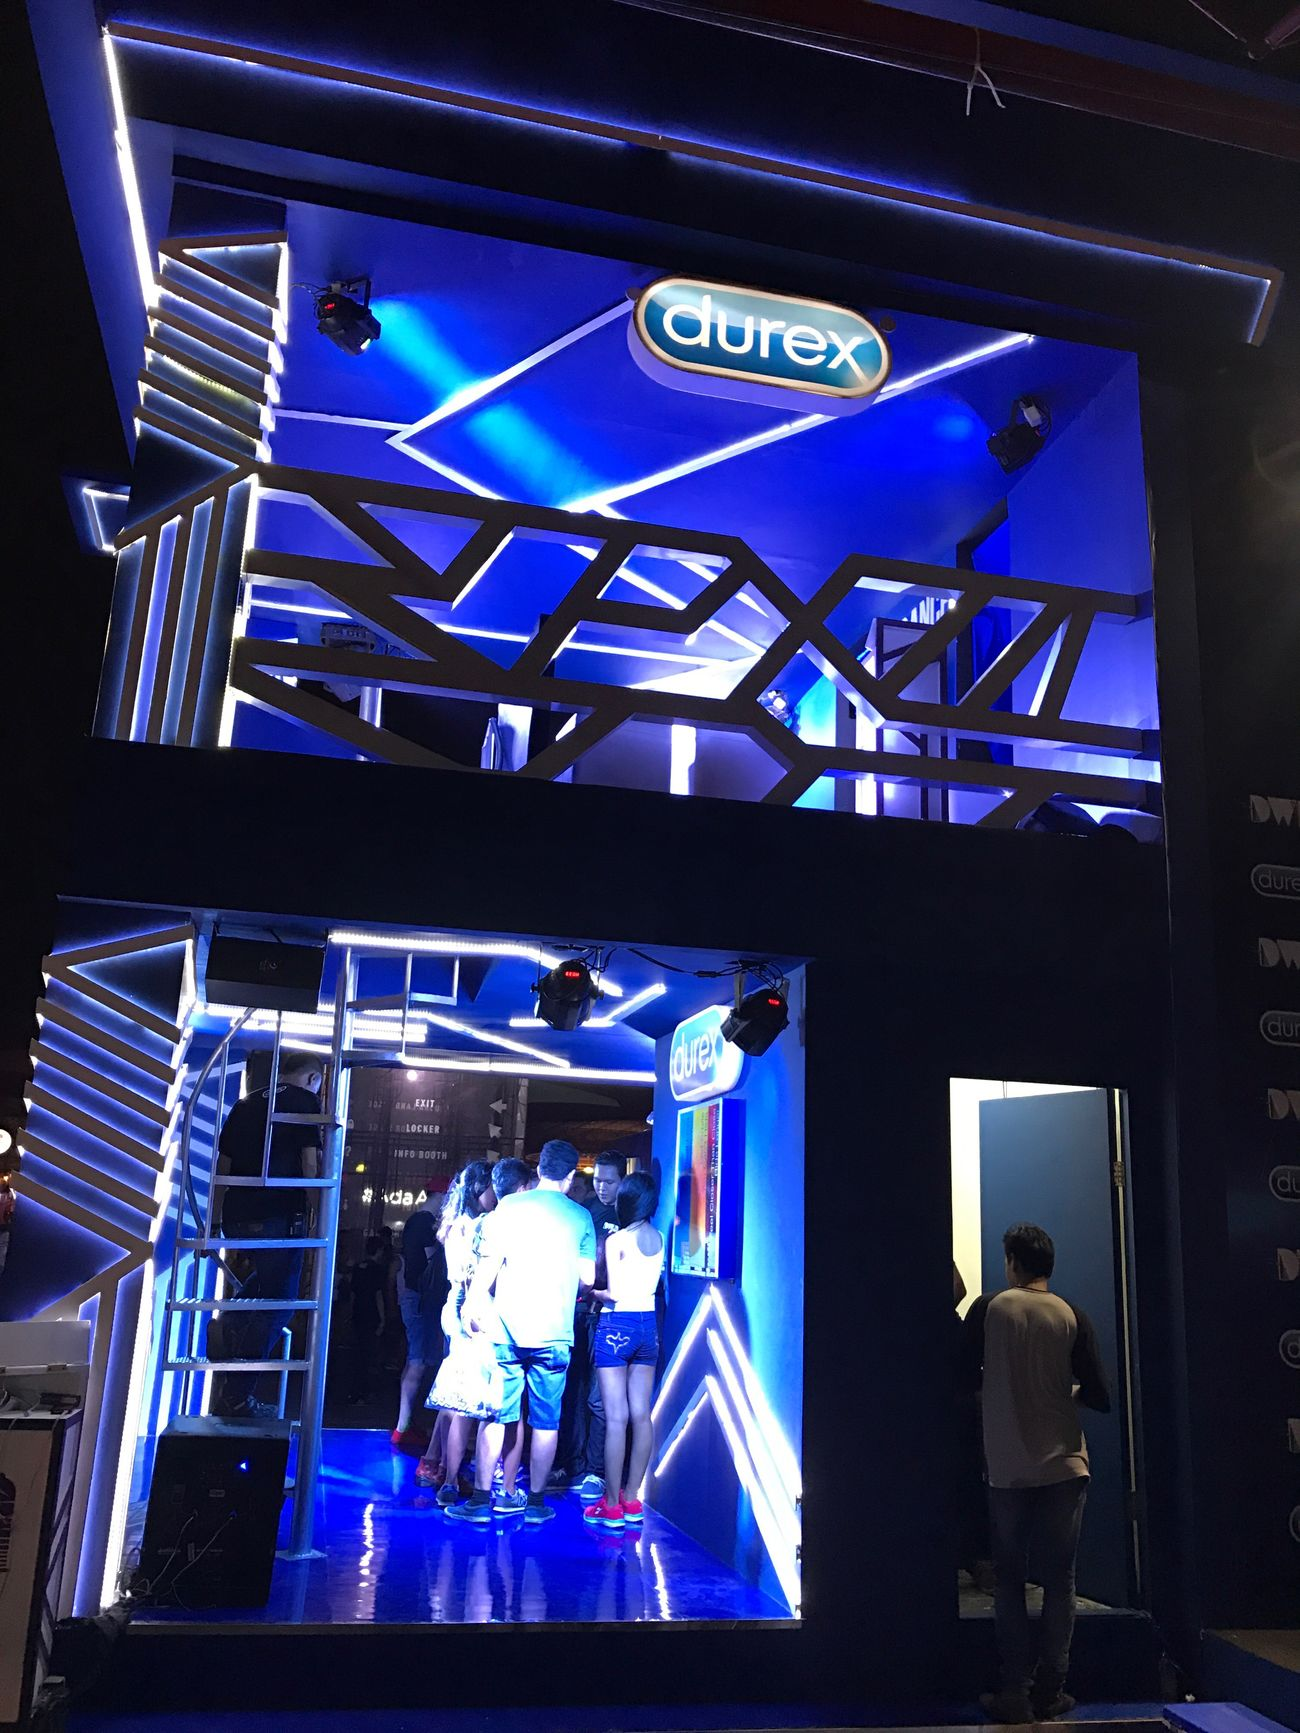 Durex booth.. DWP16, at Jiexpo Kemayoran. Djakarta Warehouse Project 2016 By ITag Live In Concert By ITag Djakarta Warehouse Project By ITag DanceMusicFestival By ITag